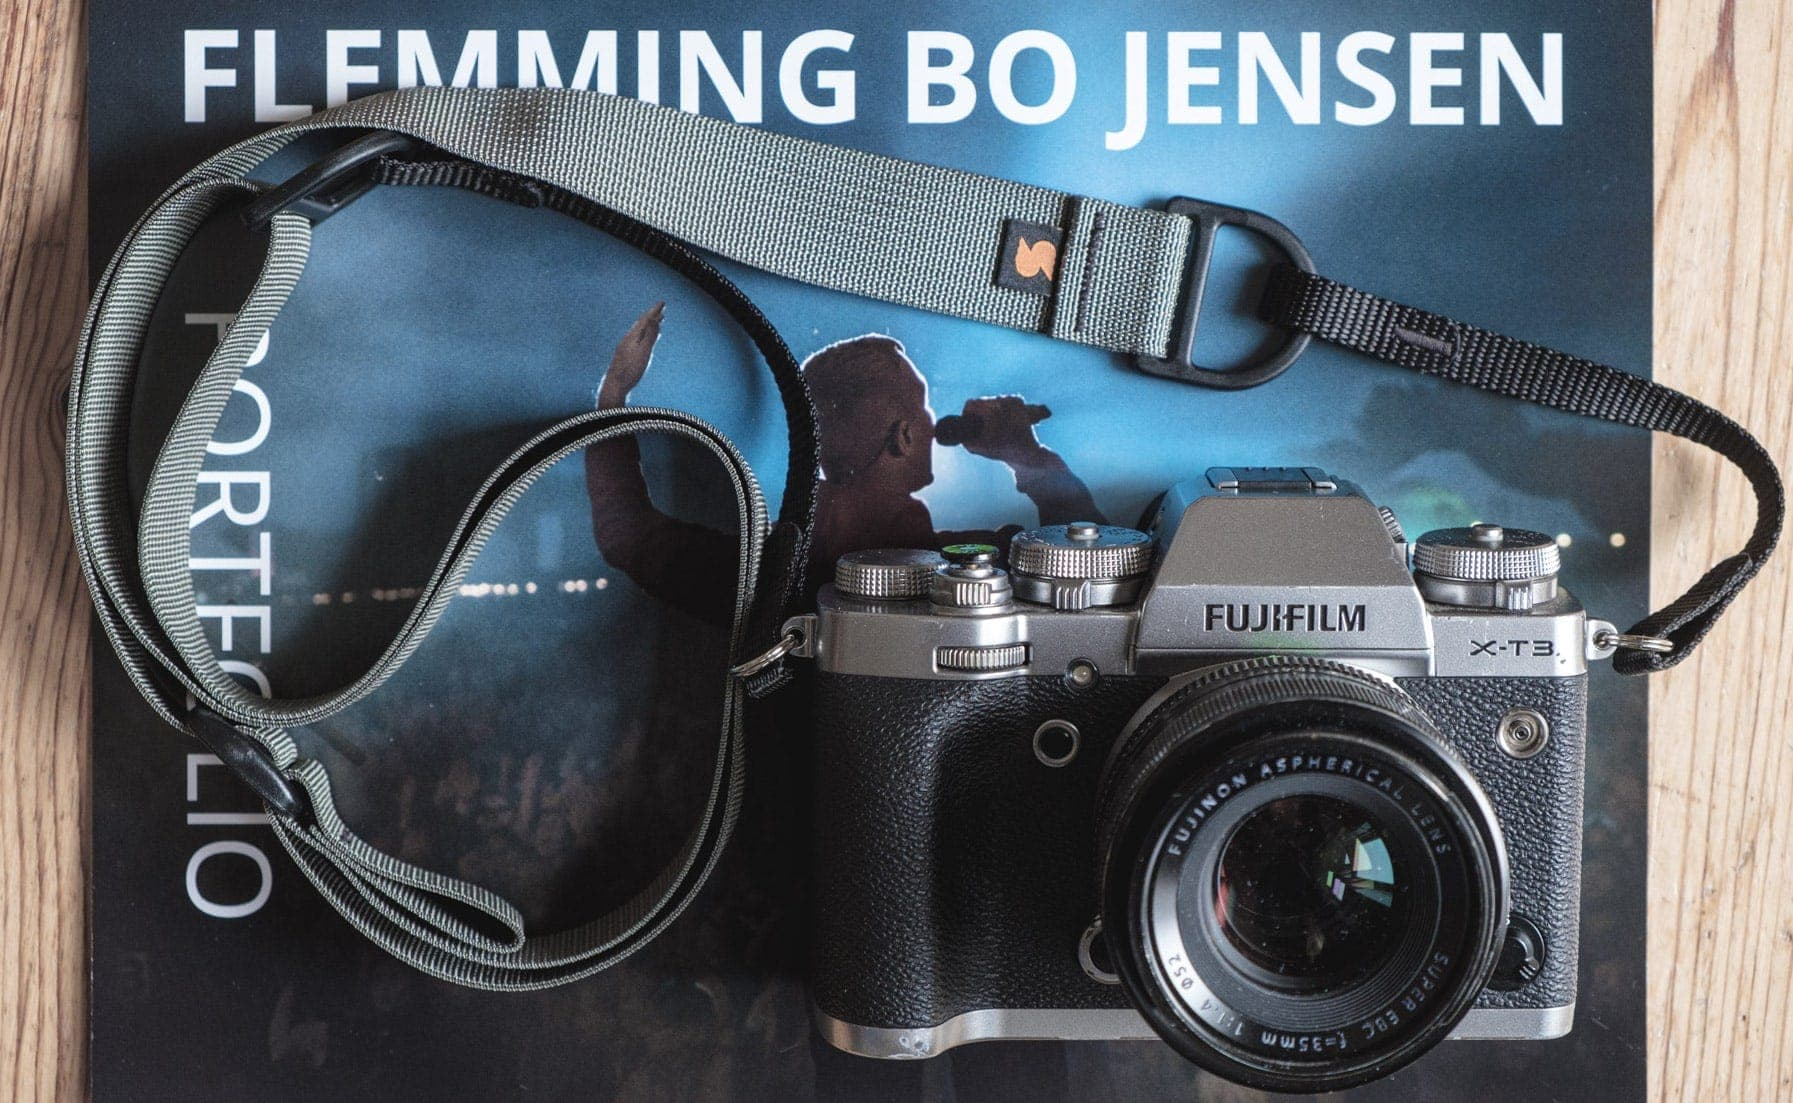 Flemming Bo Jensen recensa i so cinghii di camera Simplr F1